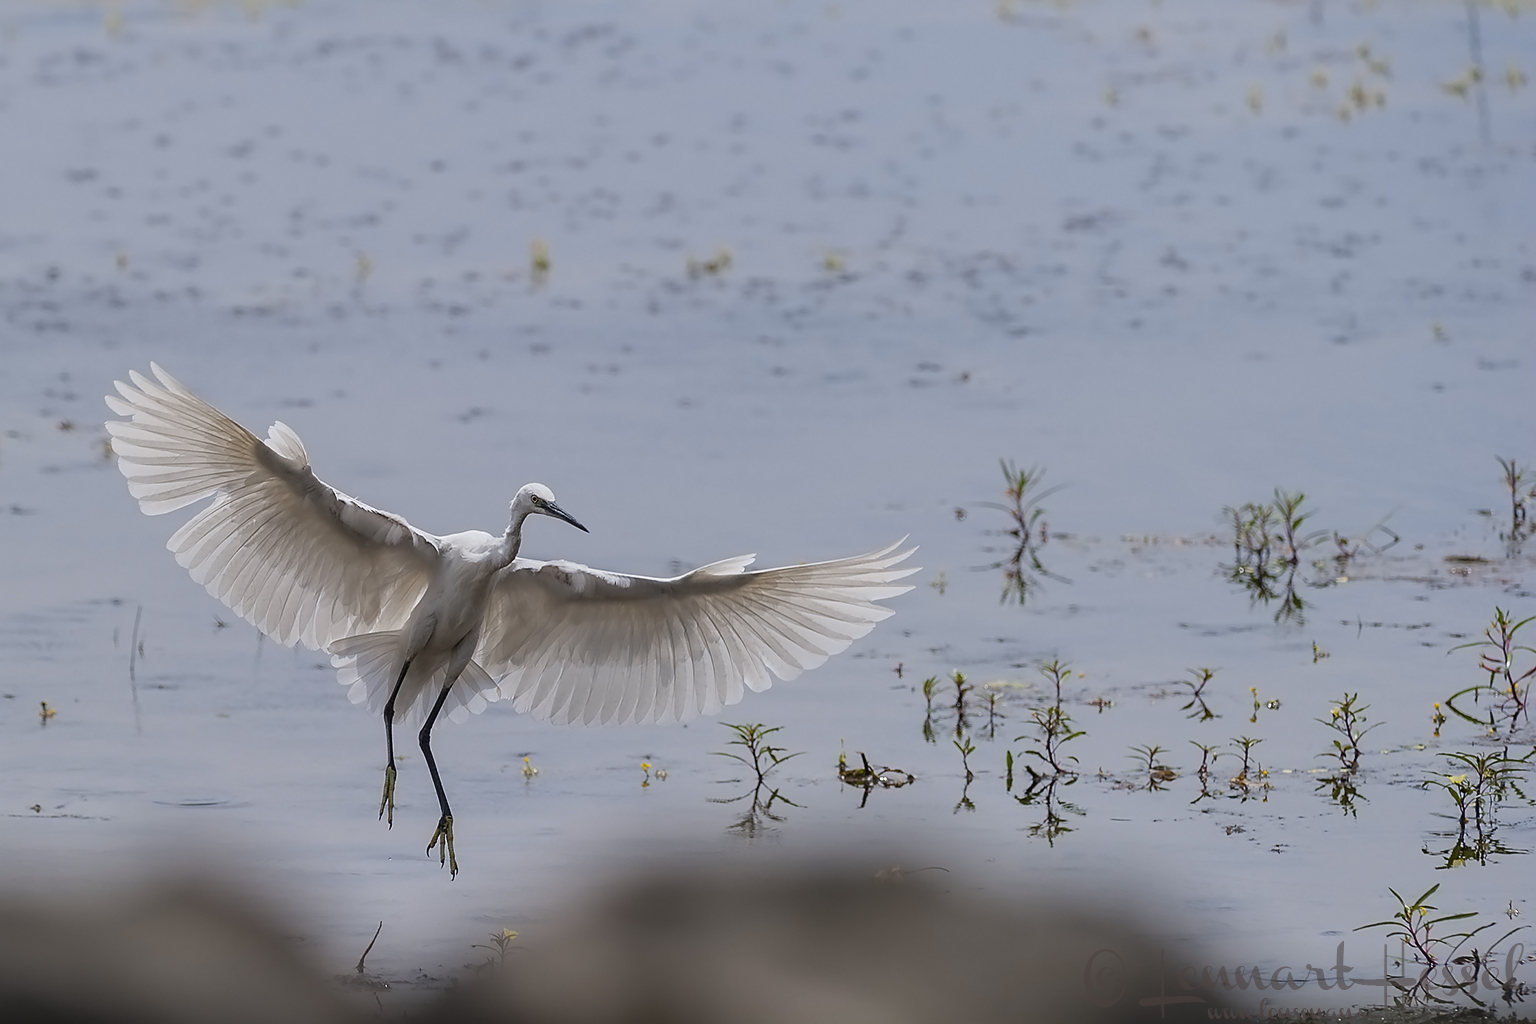 Little Egret at Thamalakane River Lodge, Botswana. National Geographic